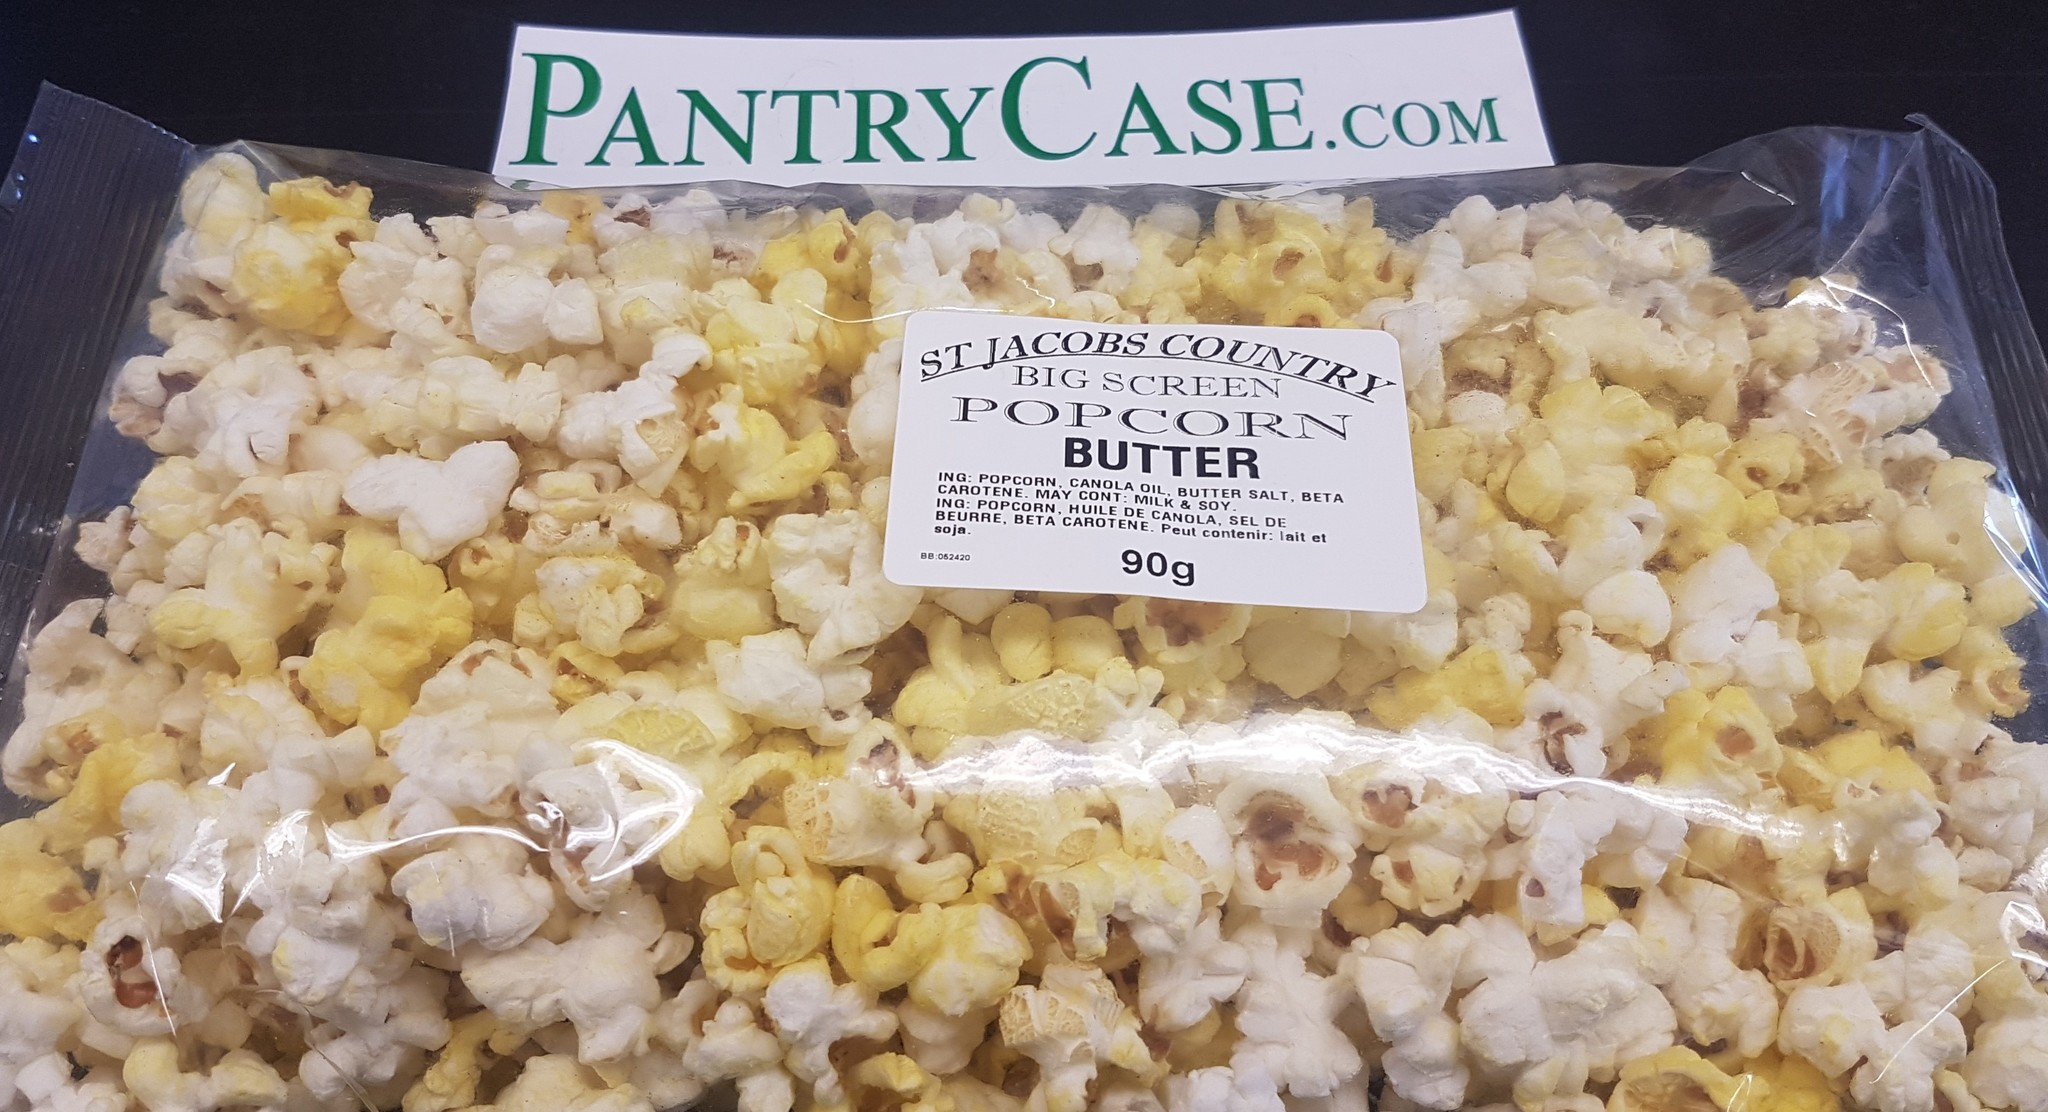 St Jacobs Country Big Screen Cheddar and White Cheese Popcorn 120g